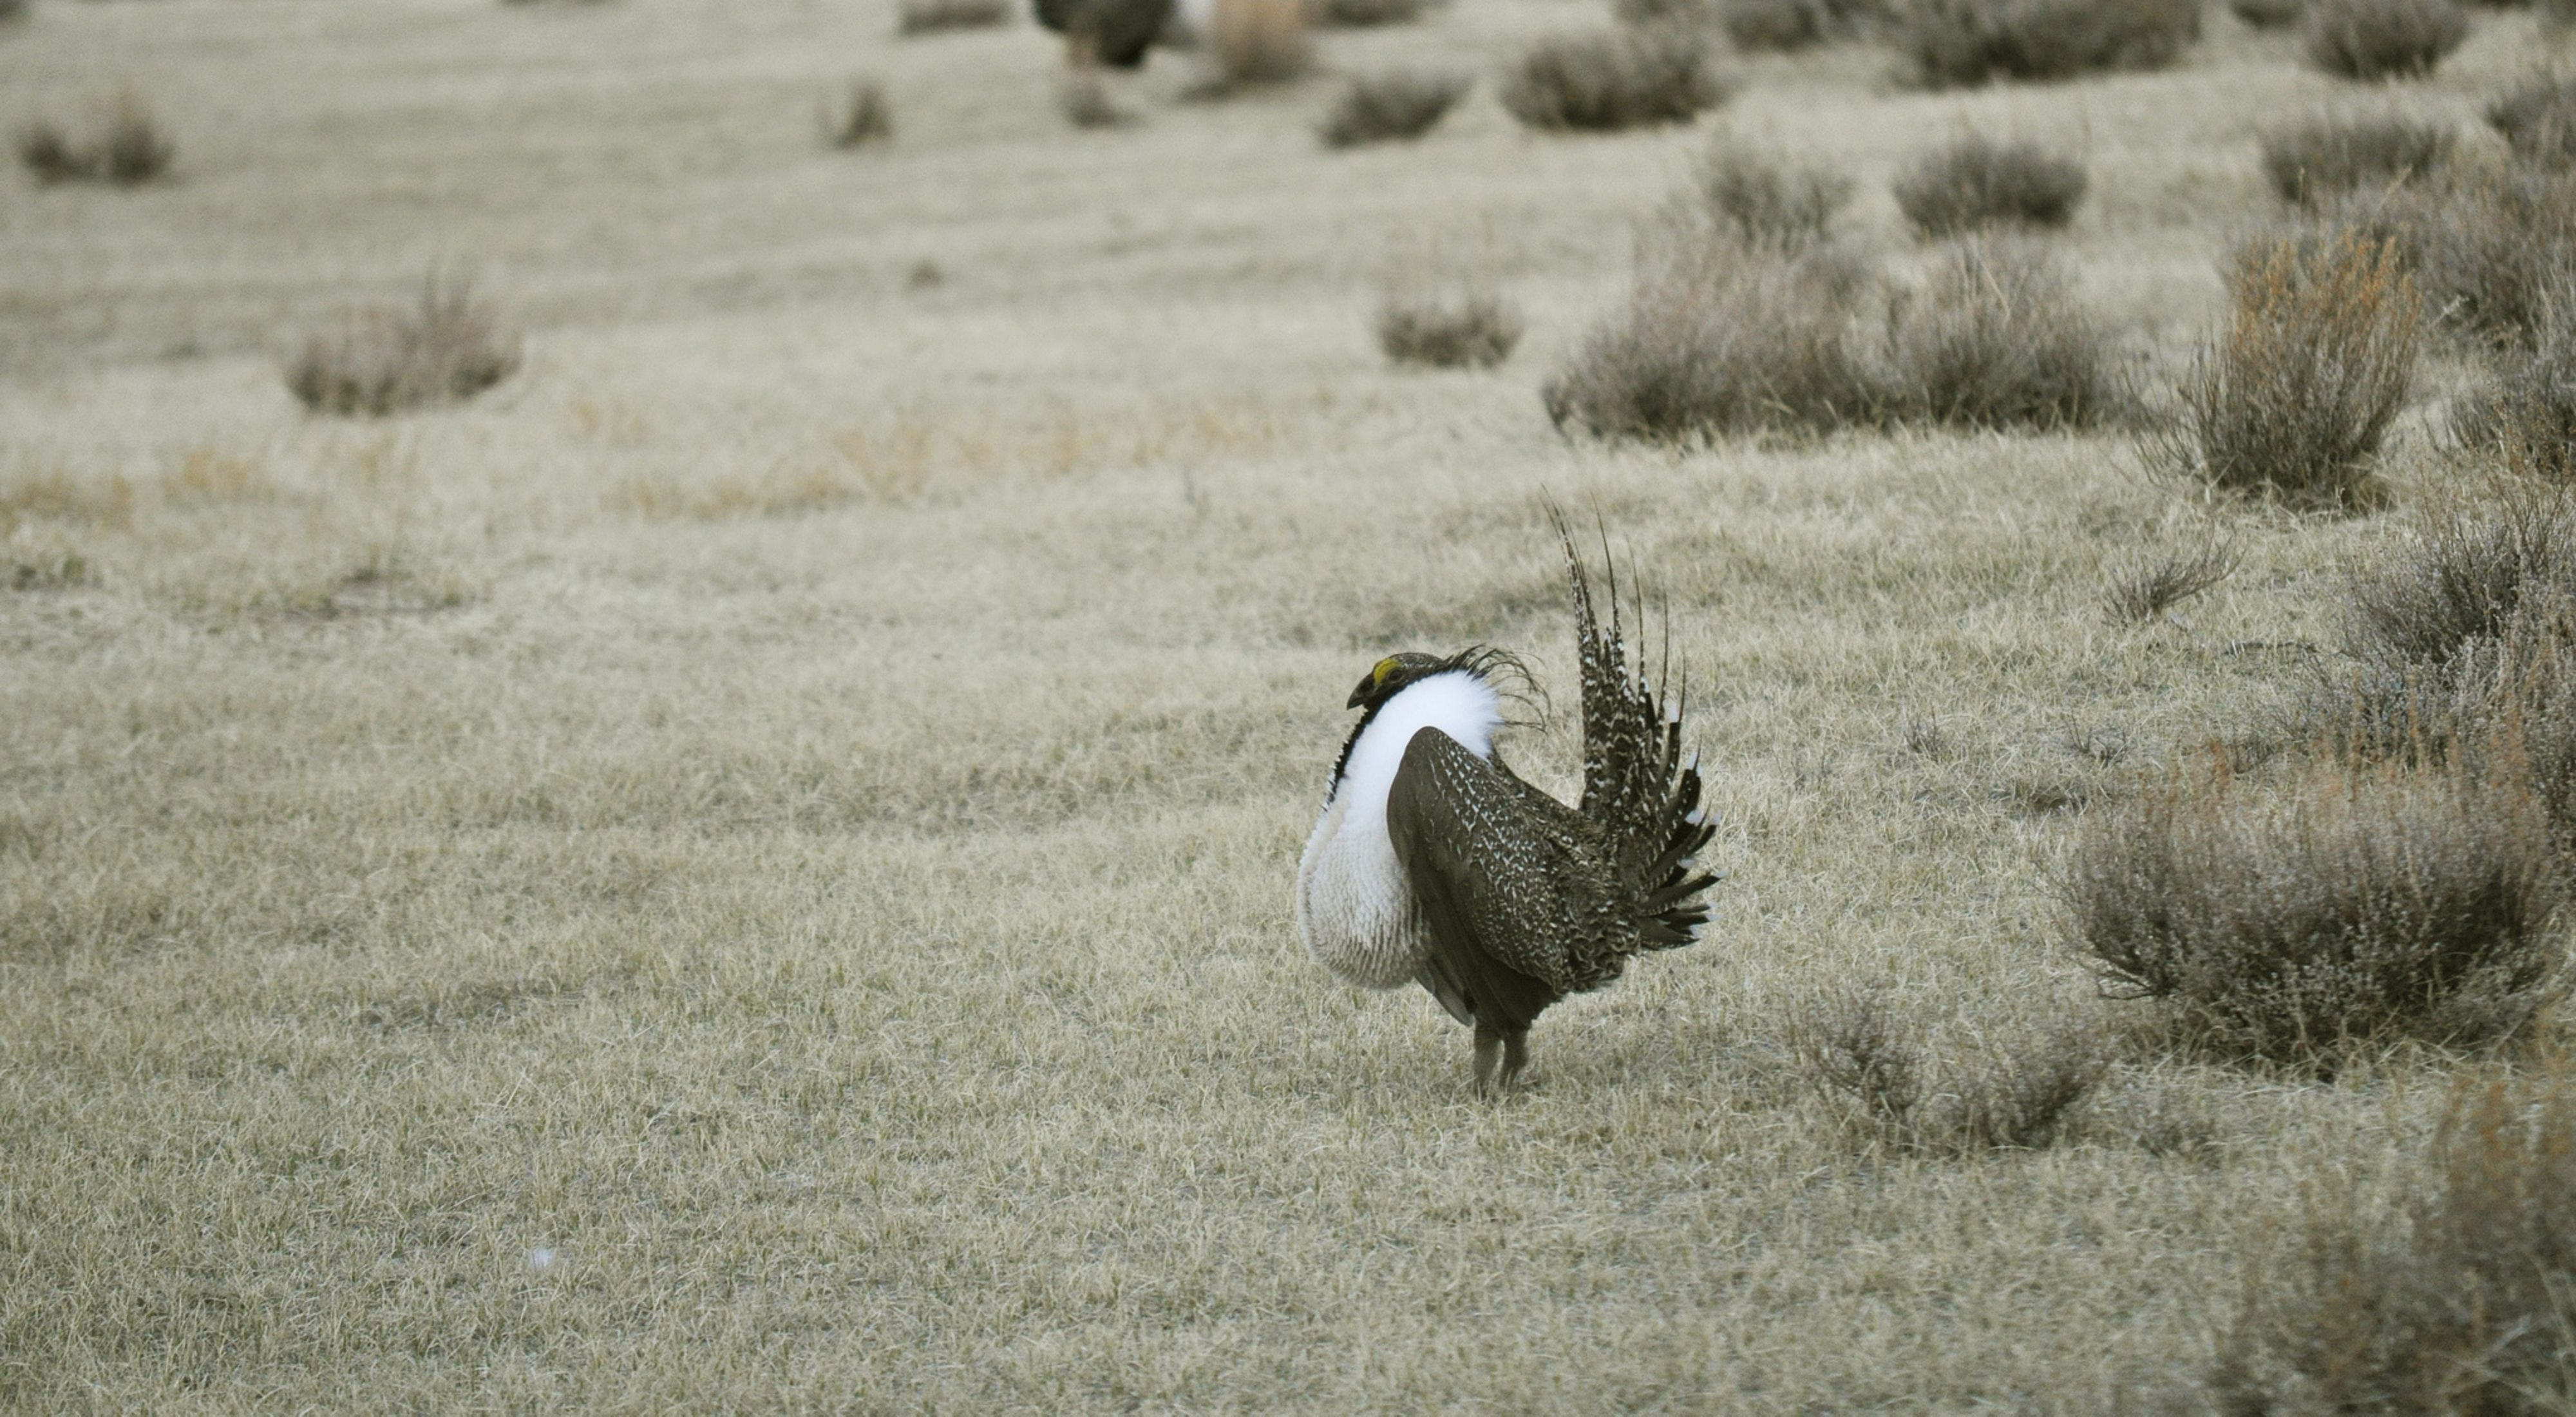 Male greater sage-grouse standing among the sagebrush